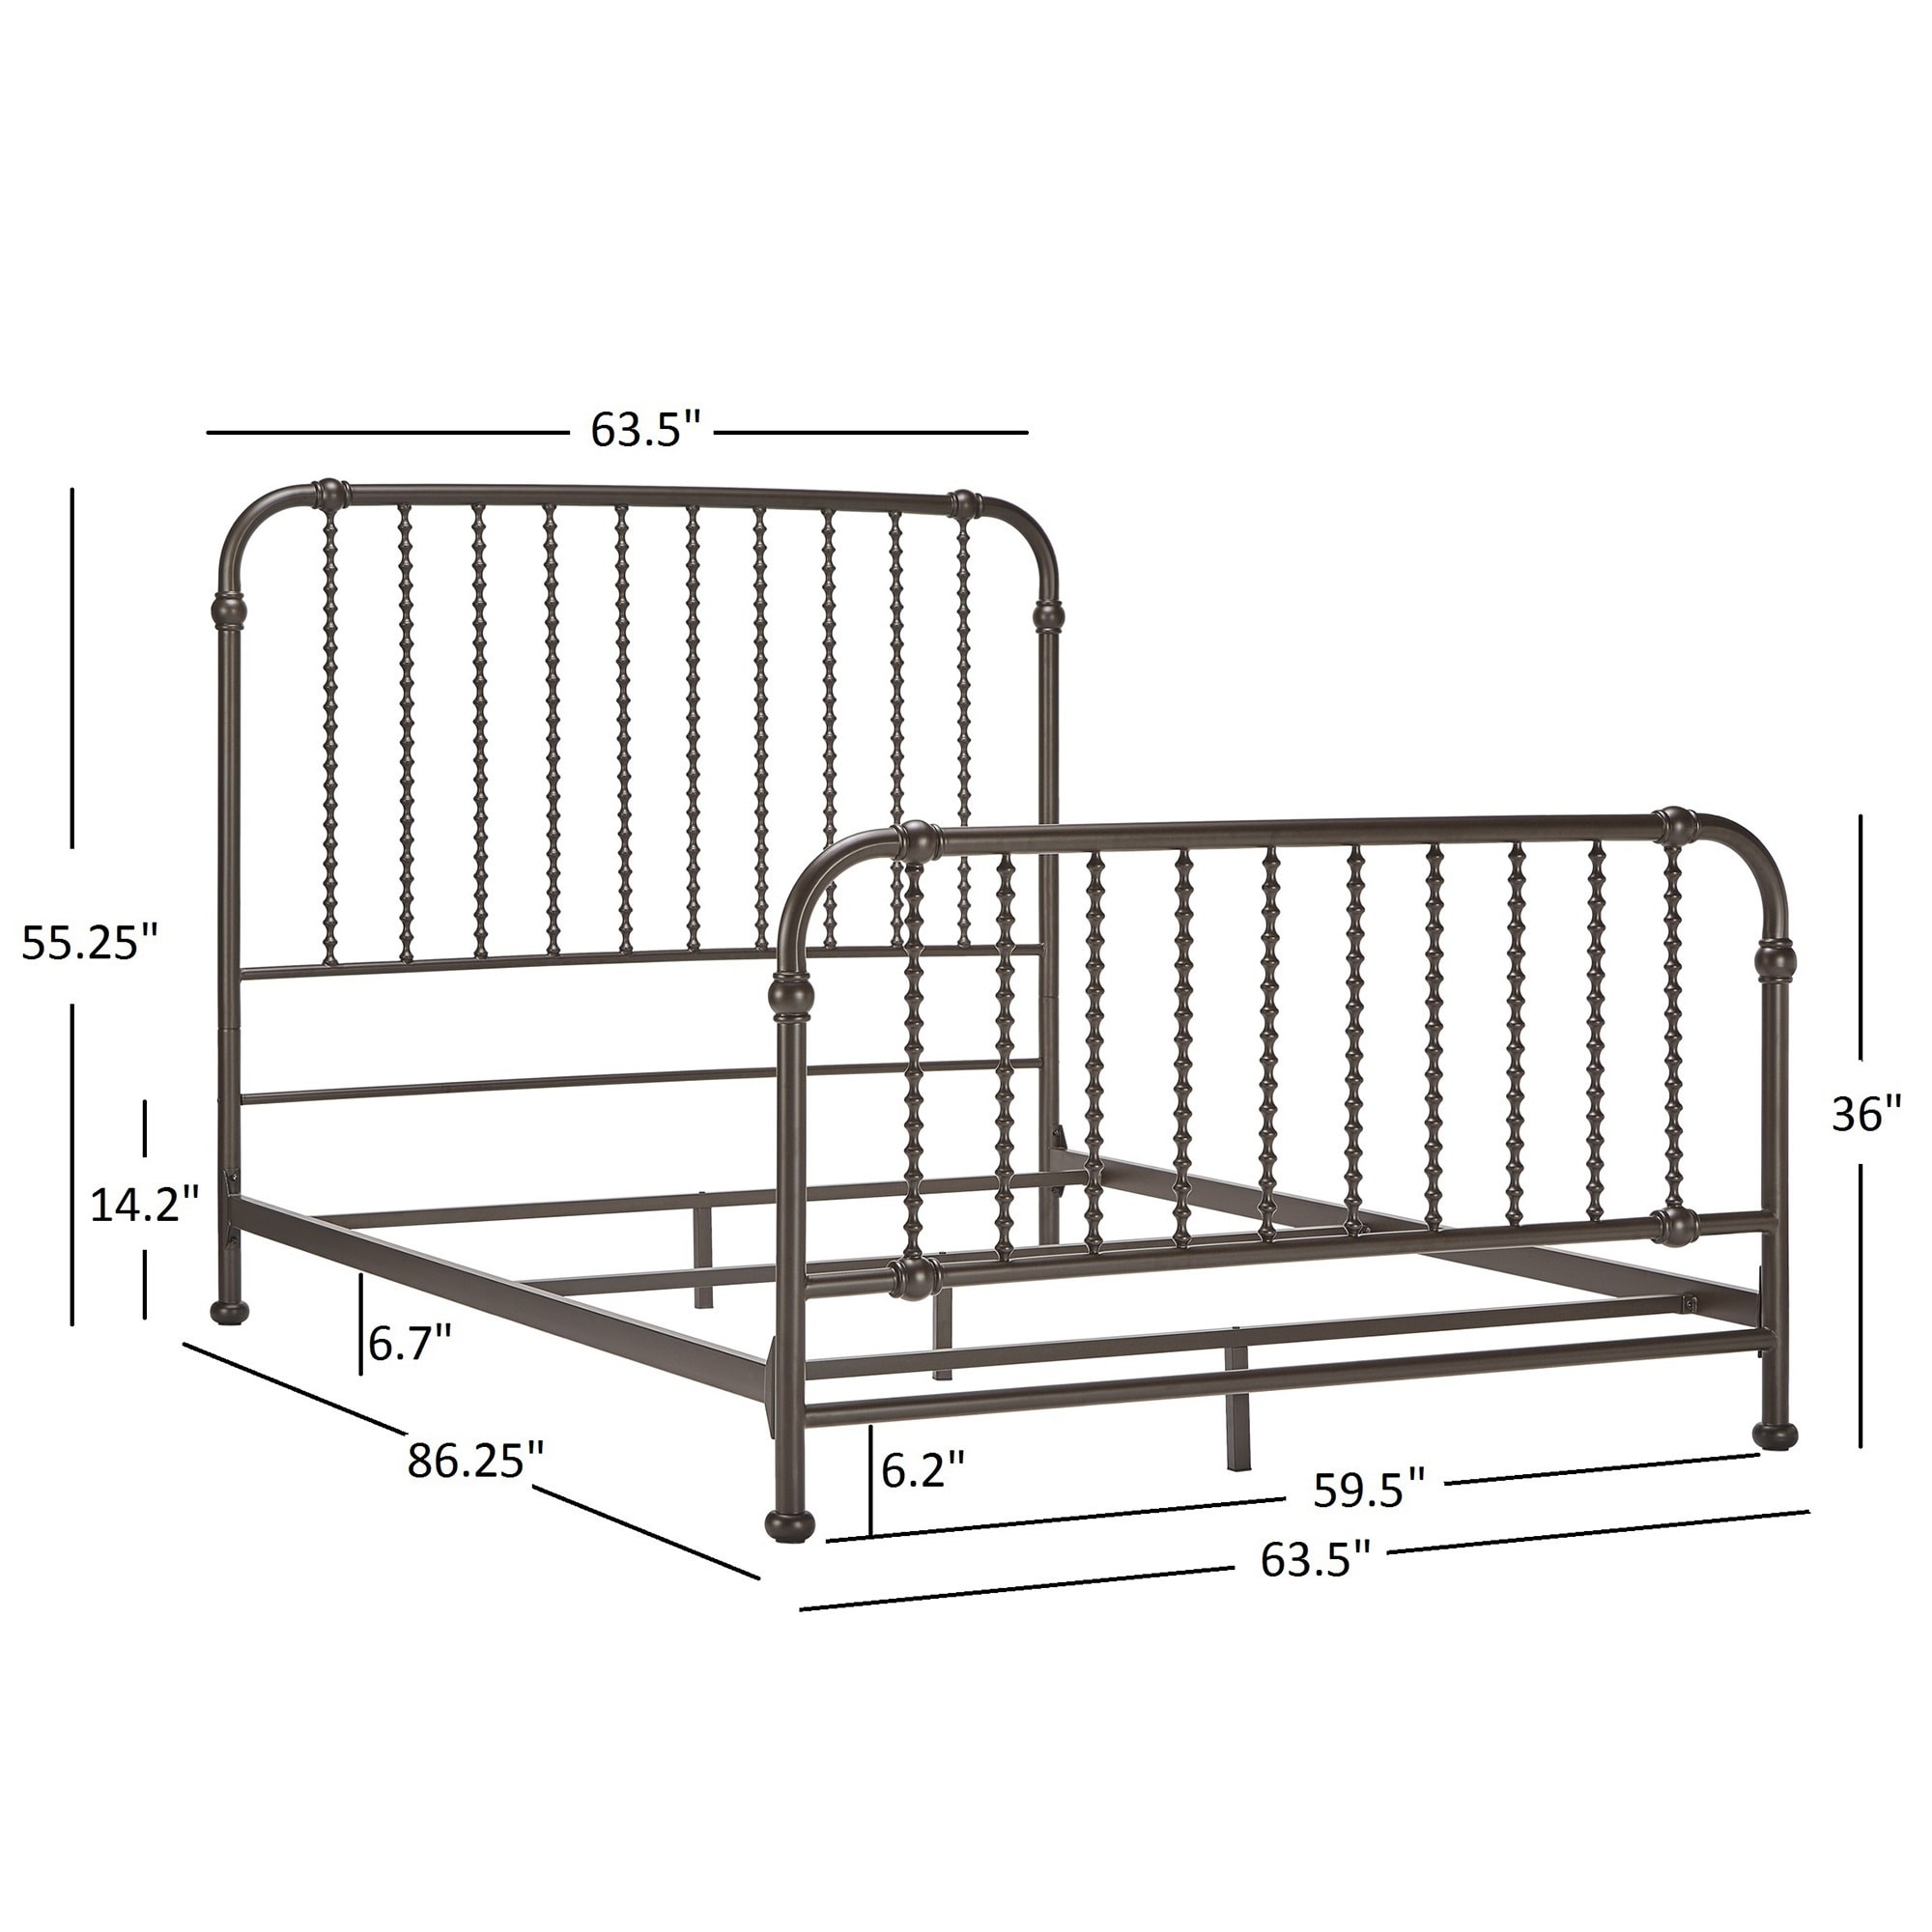 Gulliver Vintage Antique Spiral Queen Iron Metal Bed by iNSPIRE Q Bold -  Free Shipping Today - Overstock.com - 19261745